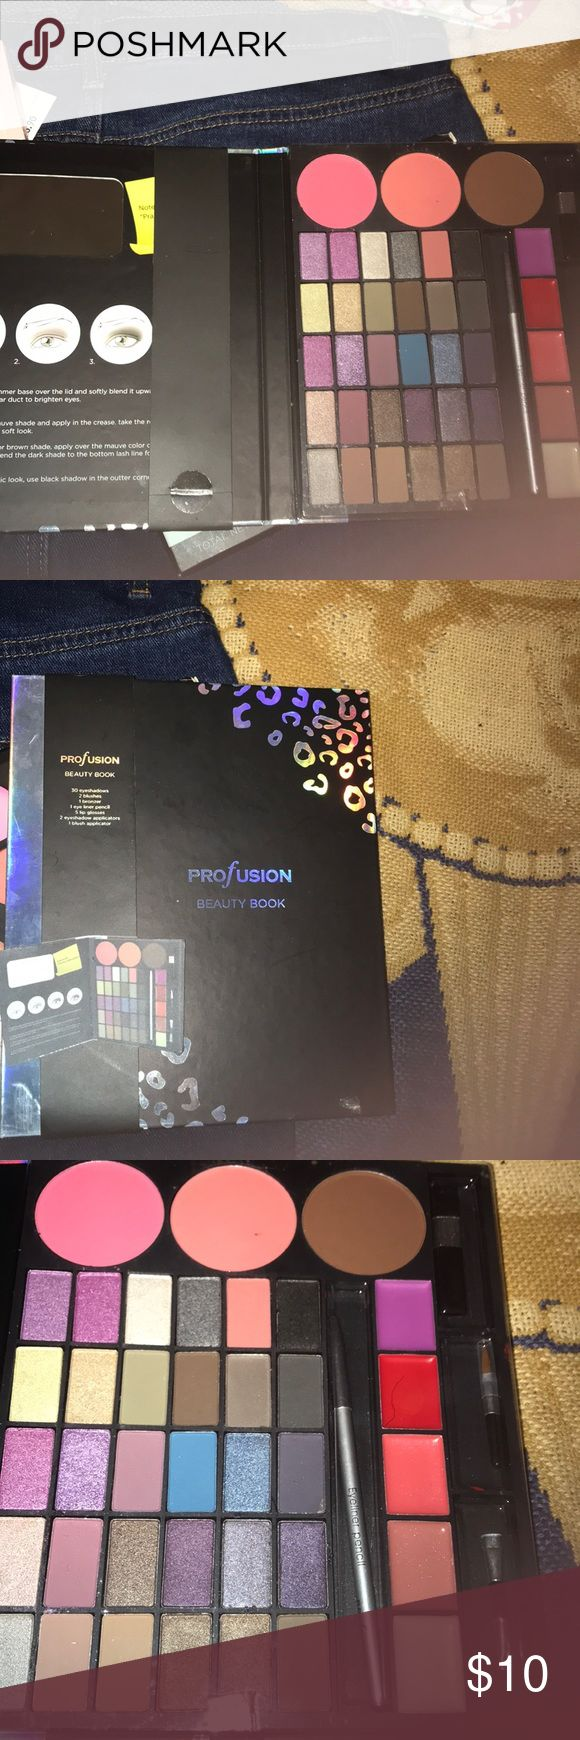 Beauty book Profusion beauty book. Comes with 30 eyeshadows, 2 blushes, 1 bronzer, 1 eye liner pencil, 5 lip glosses, 2 eye shadow applicators, & 1 blush applicator Makeup Eyeshadow